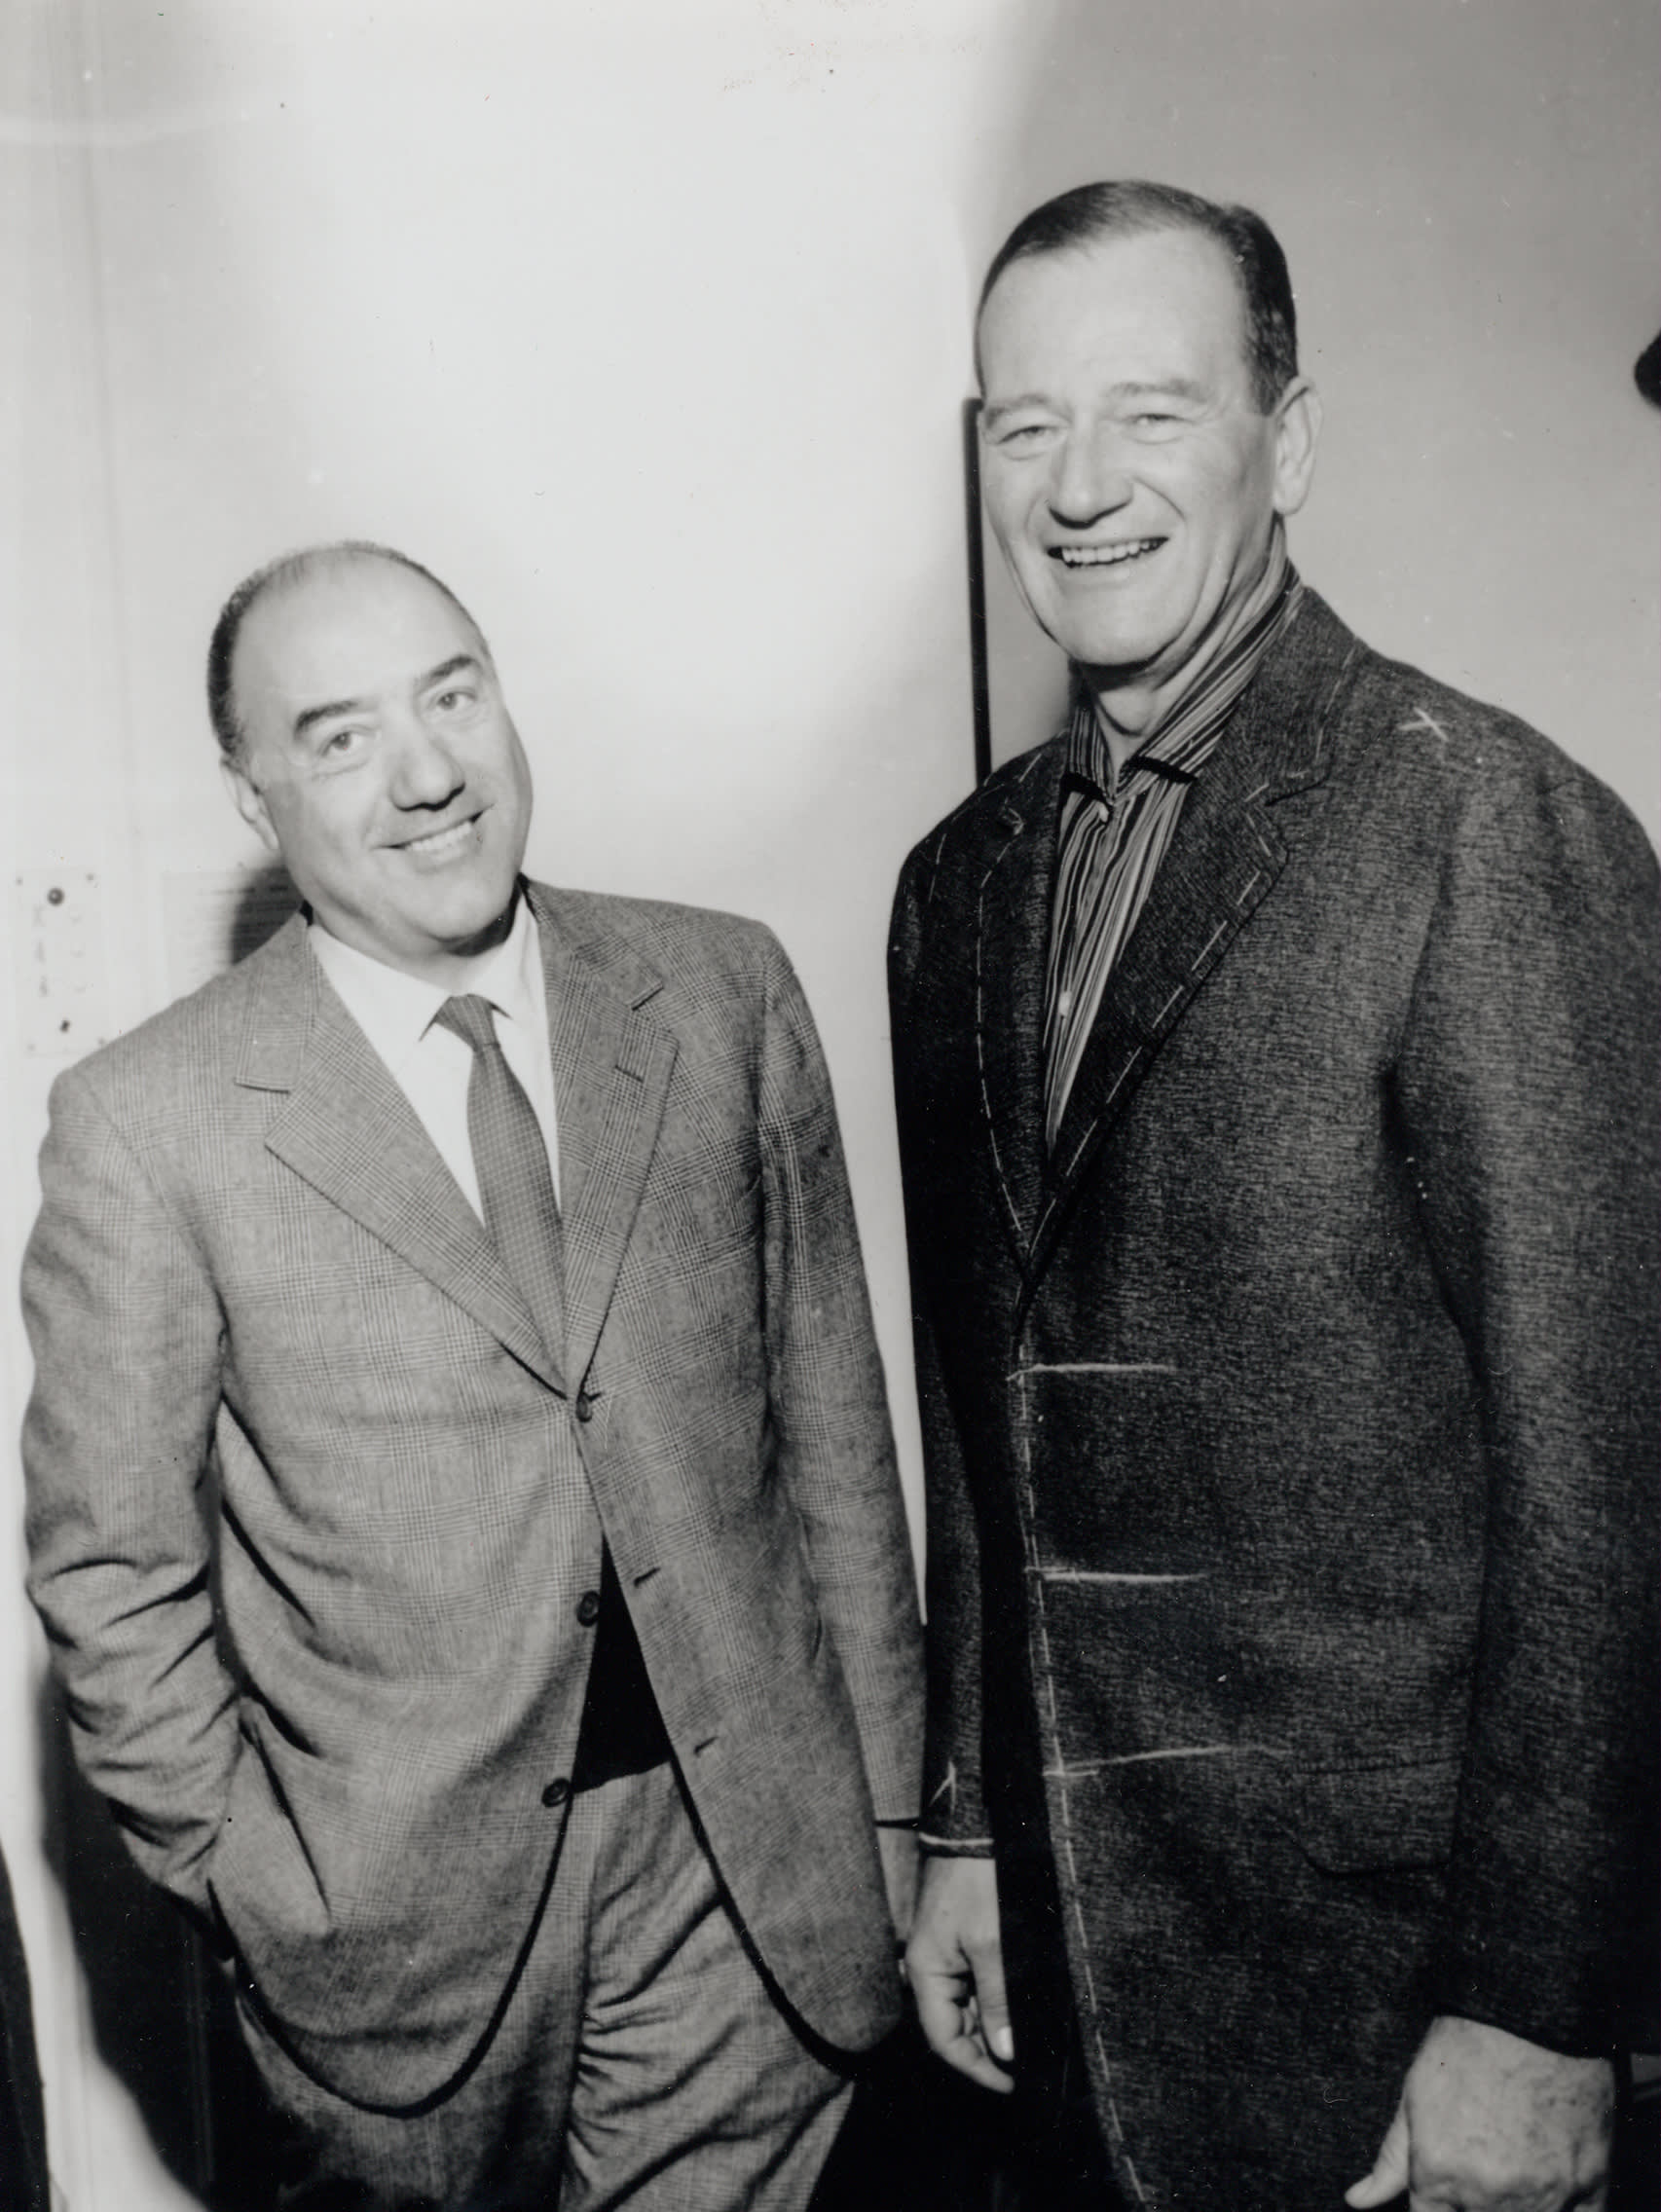 Brioni founder Gaetano Savini with American actor John Wayne